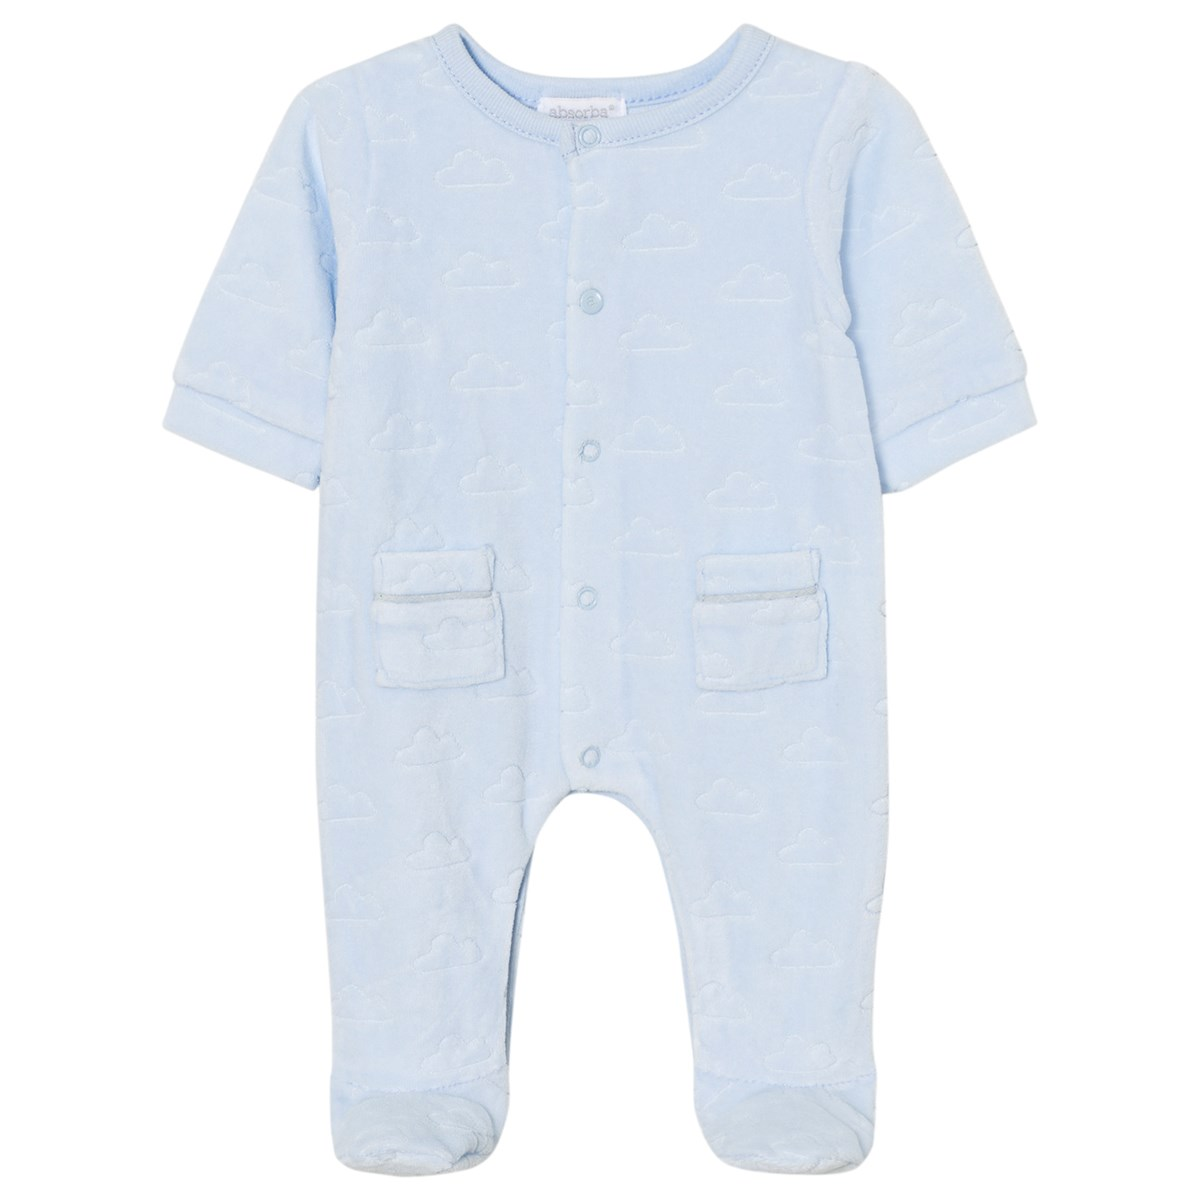 dd2870ed89d3 Absorba Pale Blue Cloud Velour Babygrow